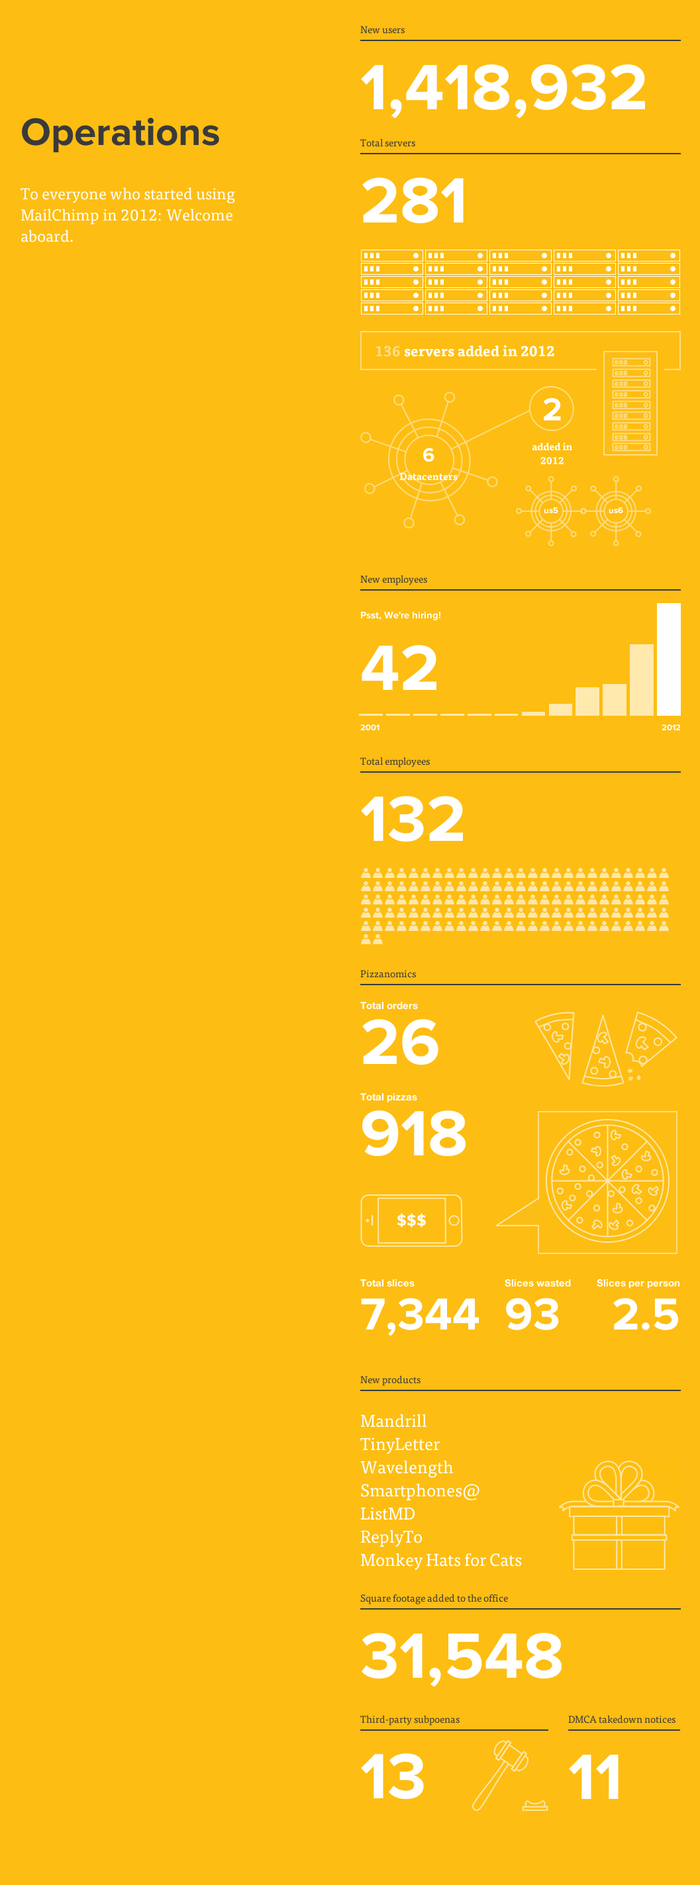 MailChimp Annual Report-4.png